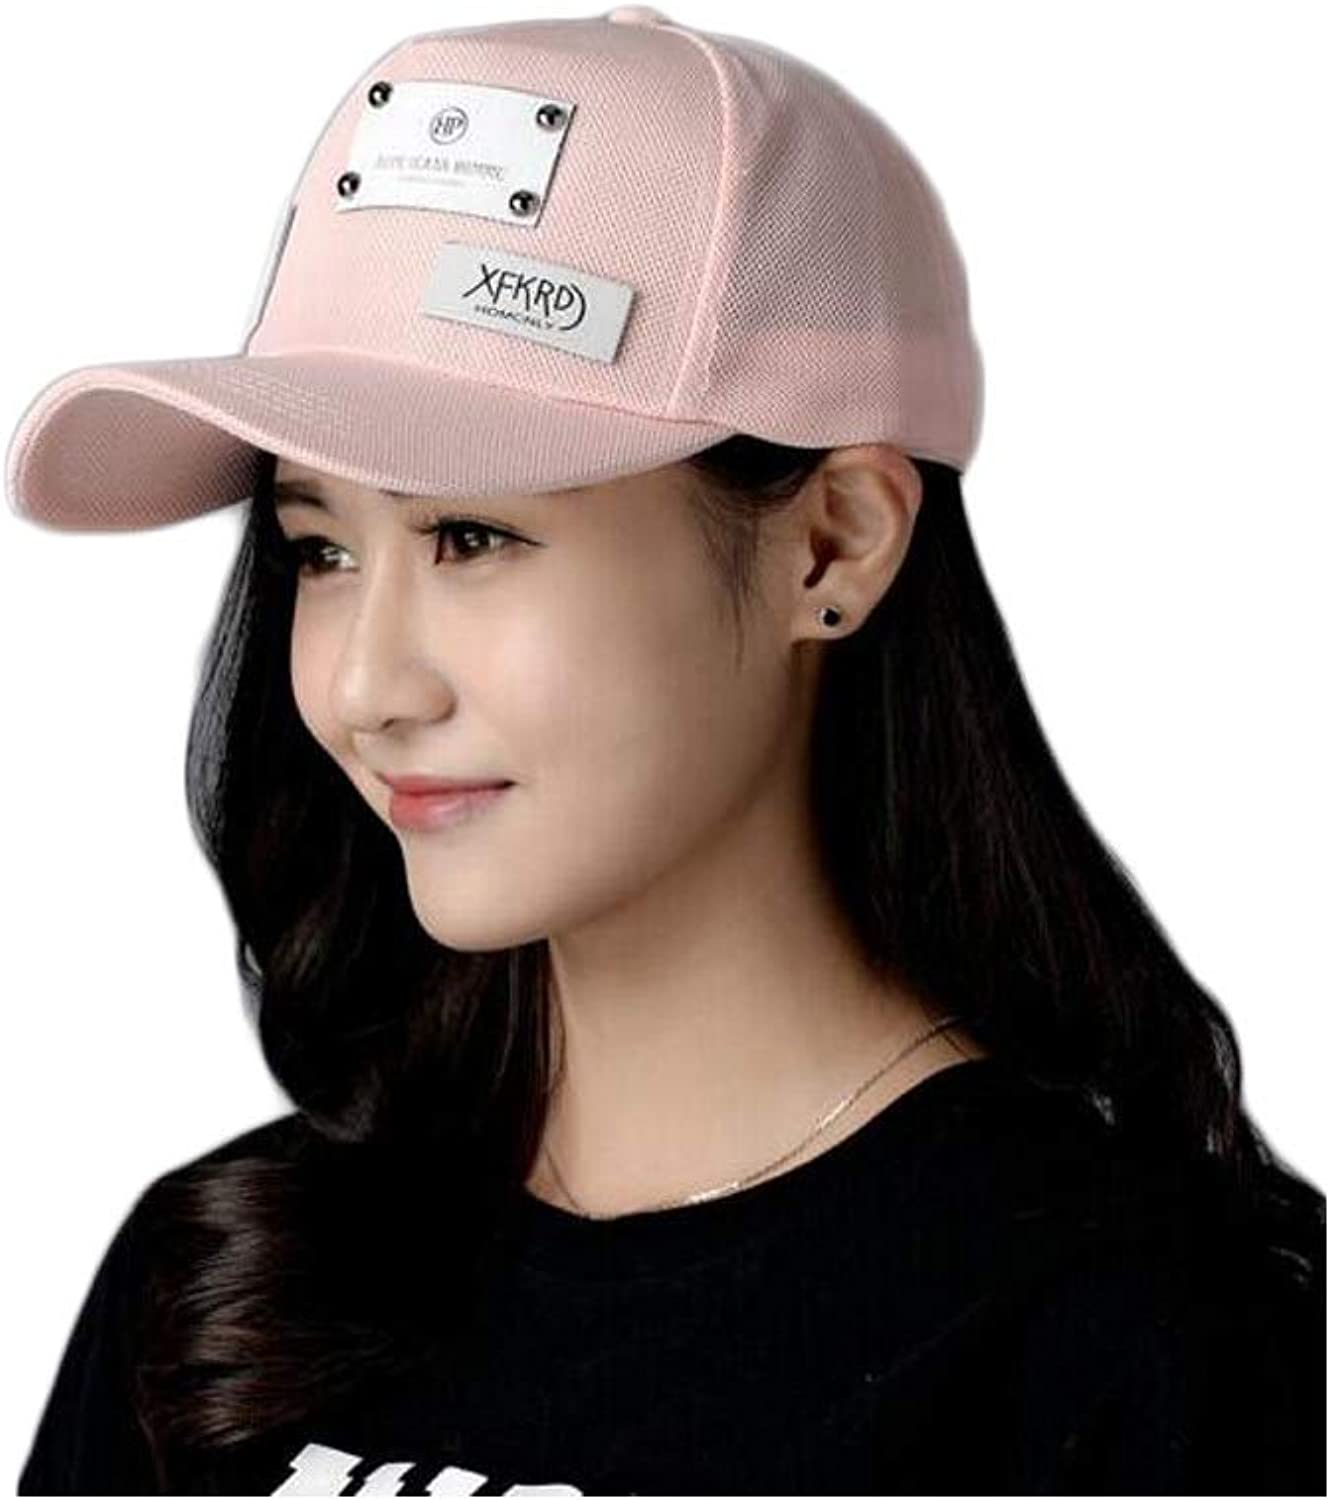 8haowenju Hat, Fashion Female Dome Baseball Cap, Outdoor Sports Cap, Pink Black White 14  7.5CM, Perimeter 5559CM, The for Friends and Family Suitable for Young Adults